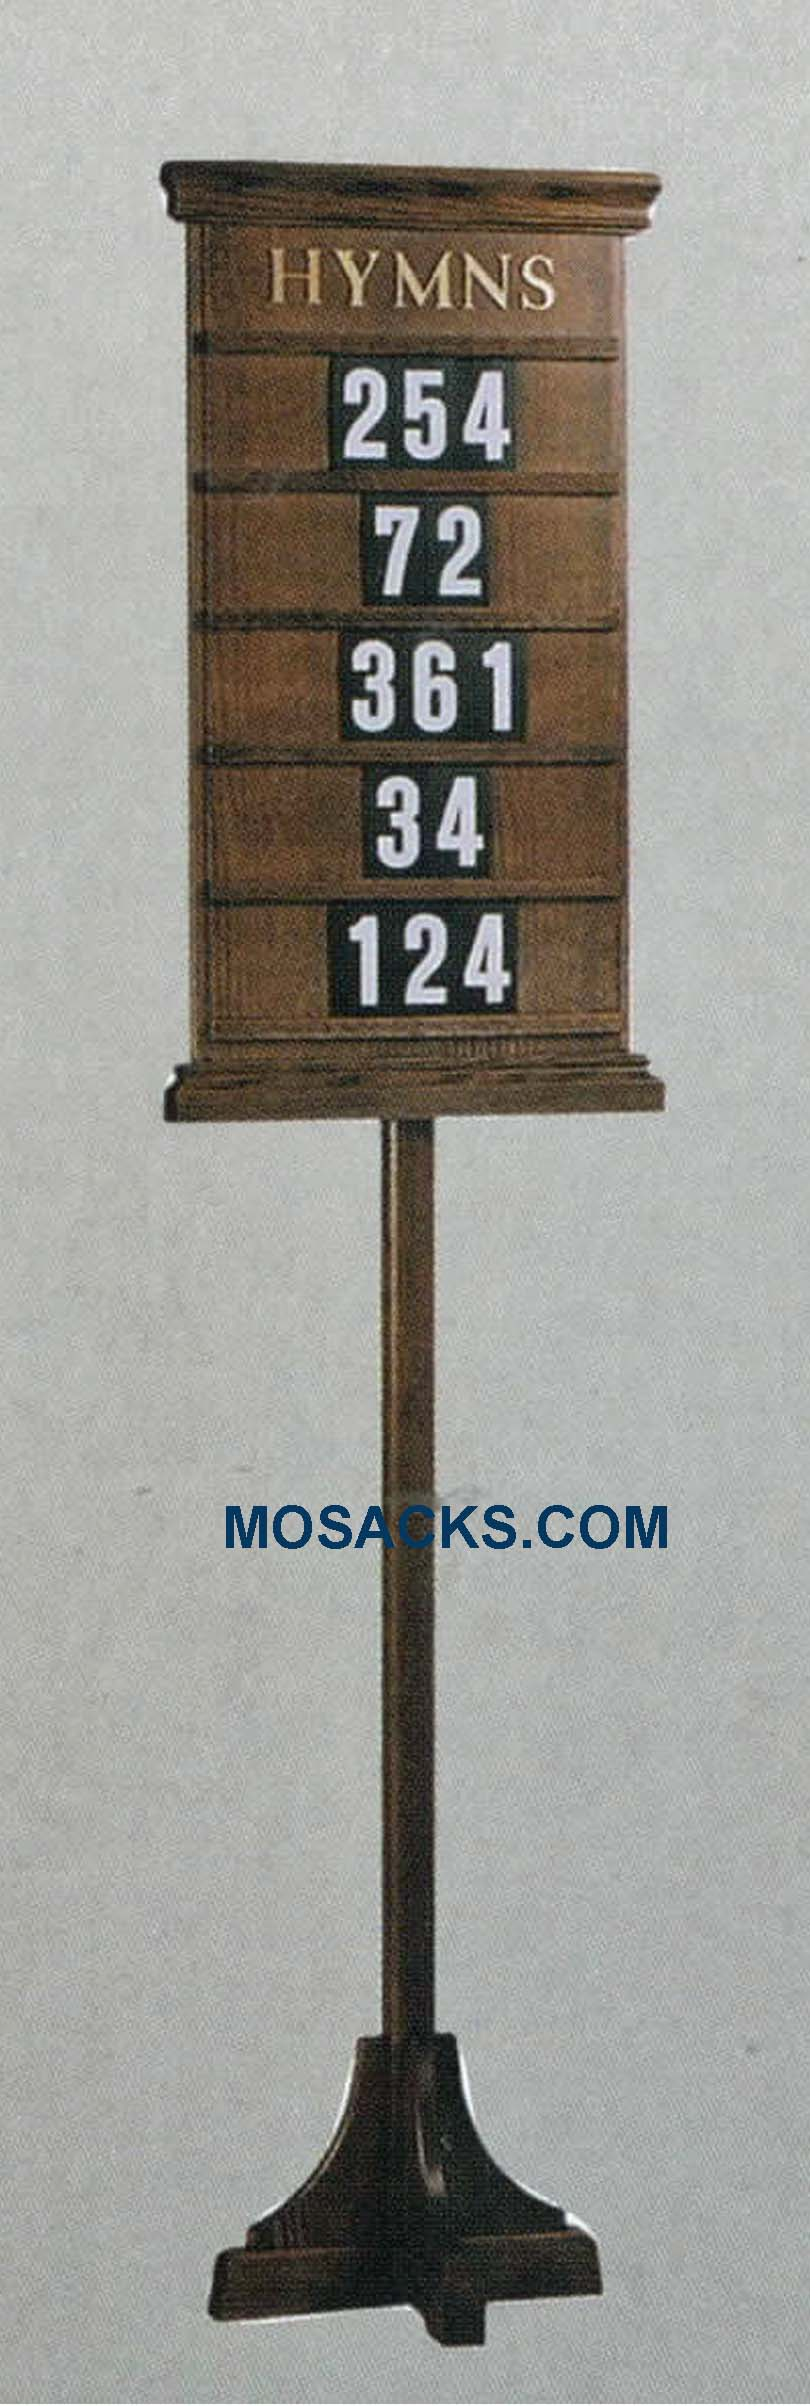 "Wooden Hymn Board with Stand 19"" w x 77"" h #234 Floor Standing Hymn Board"